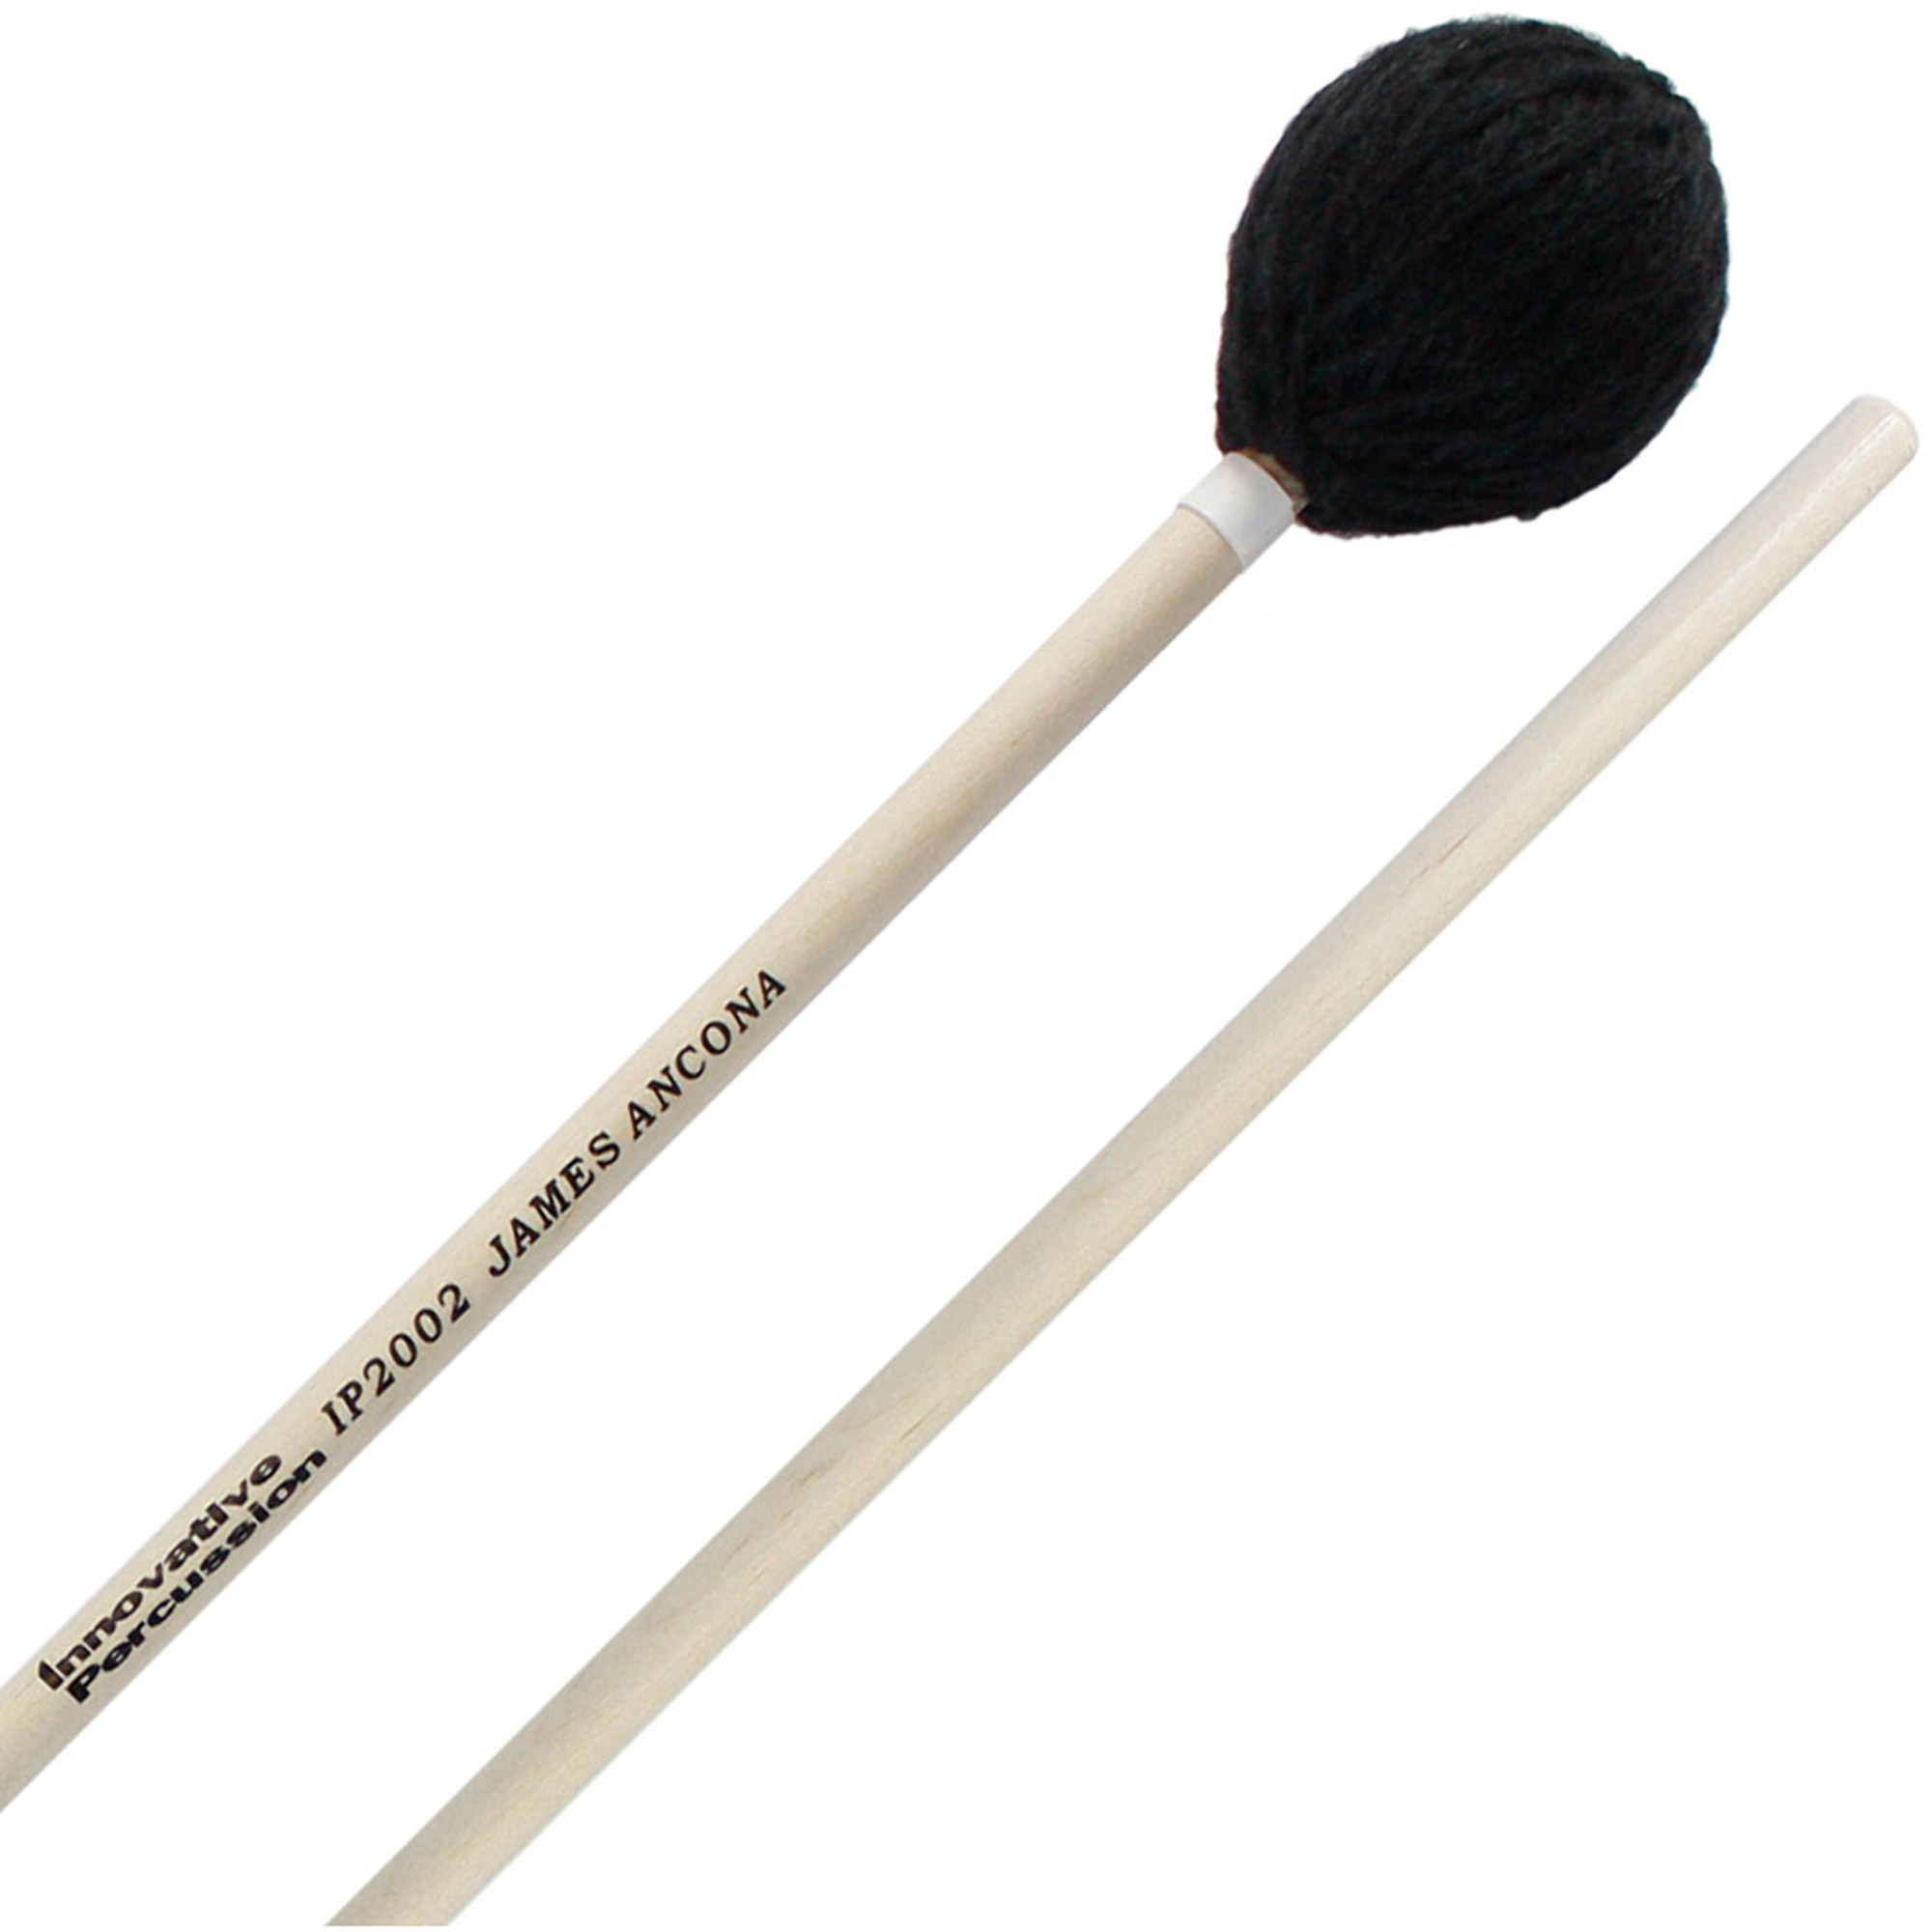 Innovative Percussion IP2002 James Ancona Series Soft Marimba Mallets with Birch Handles by Innovative Percussion